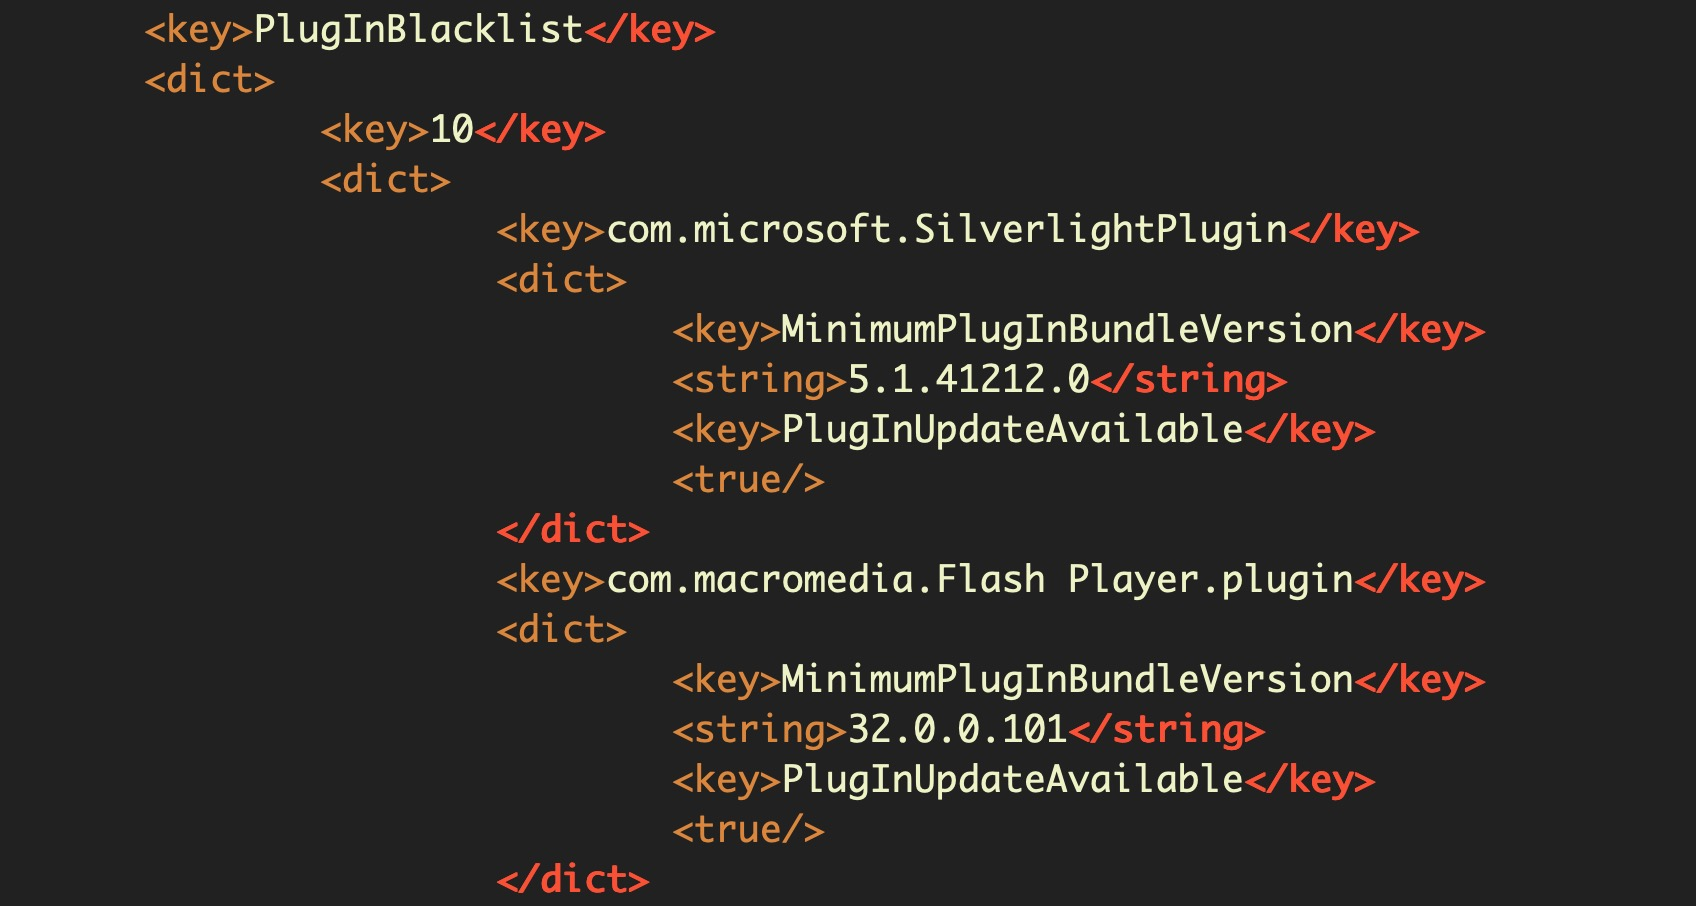 image of plug-in blacklist